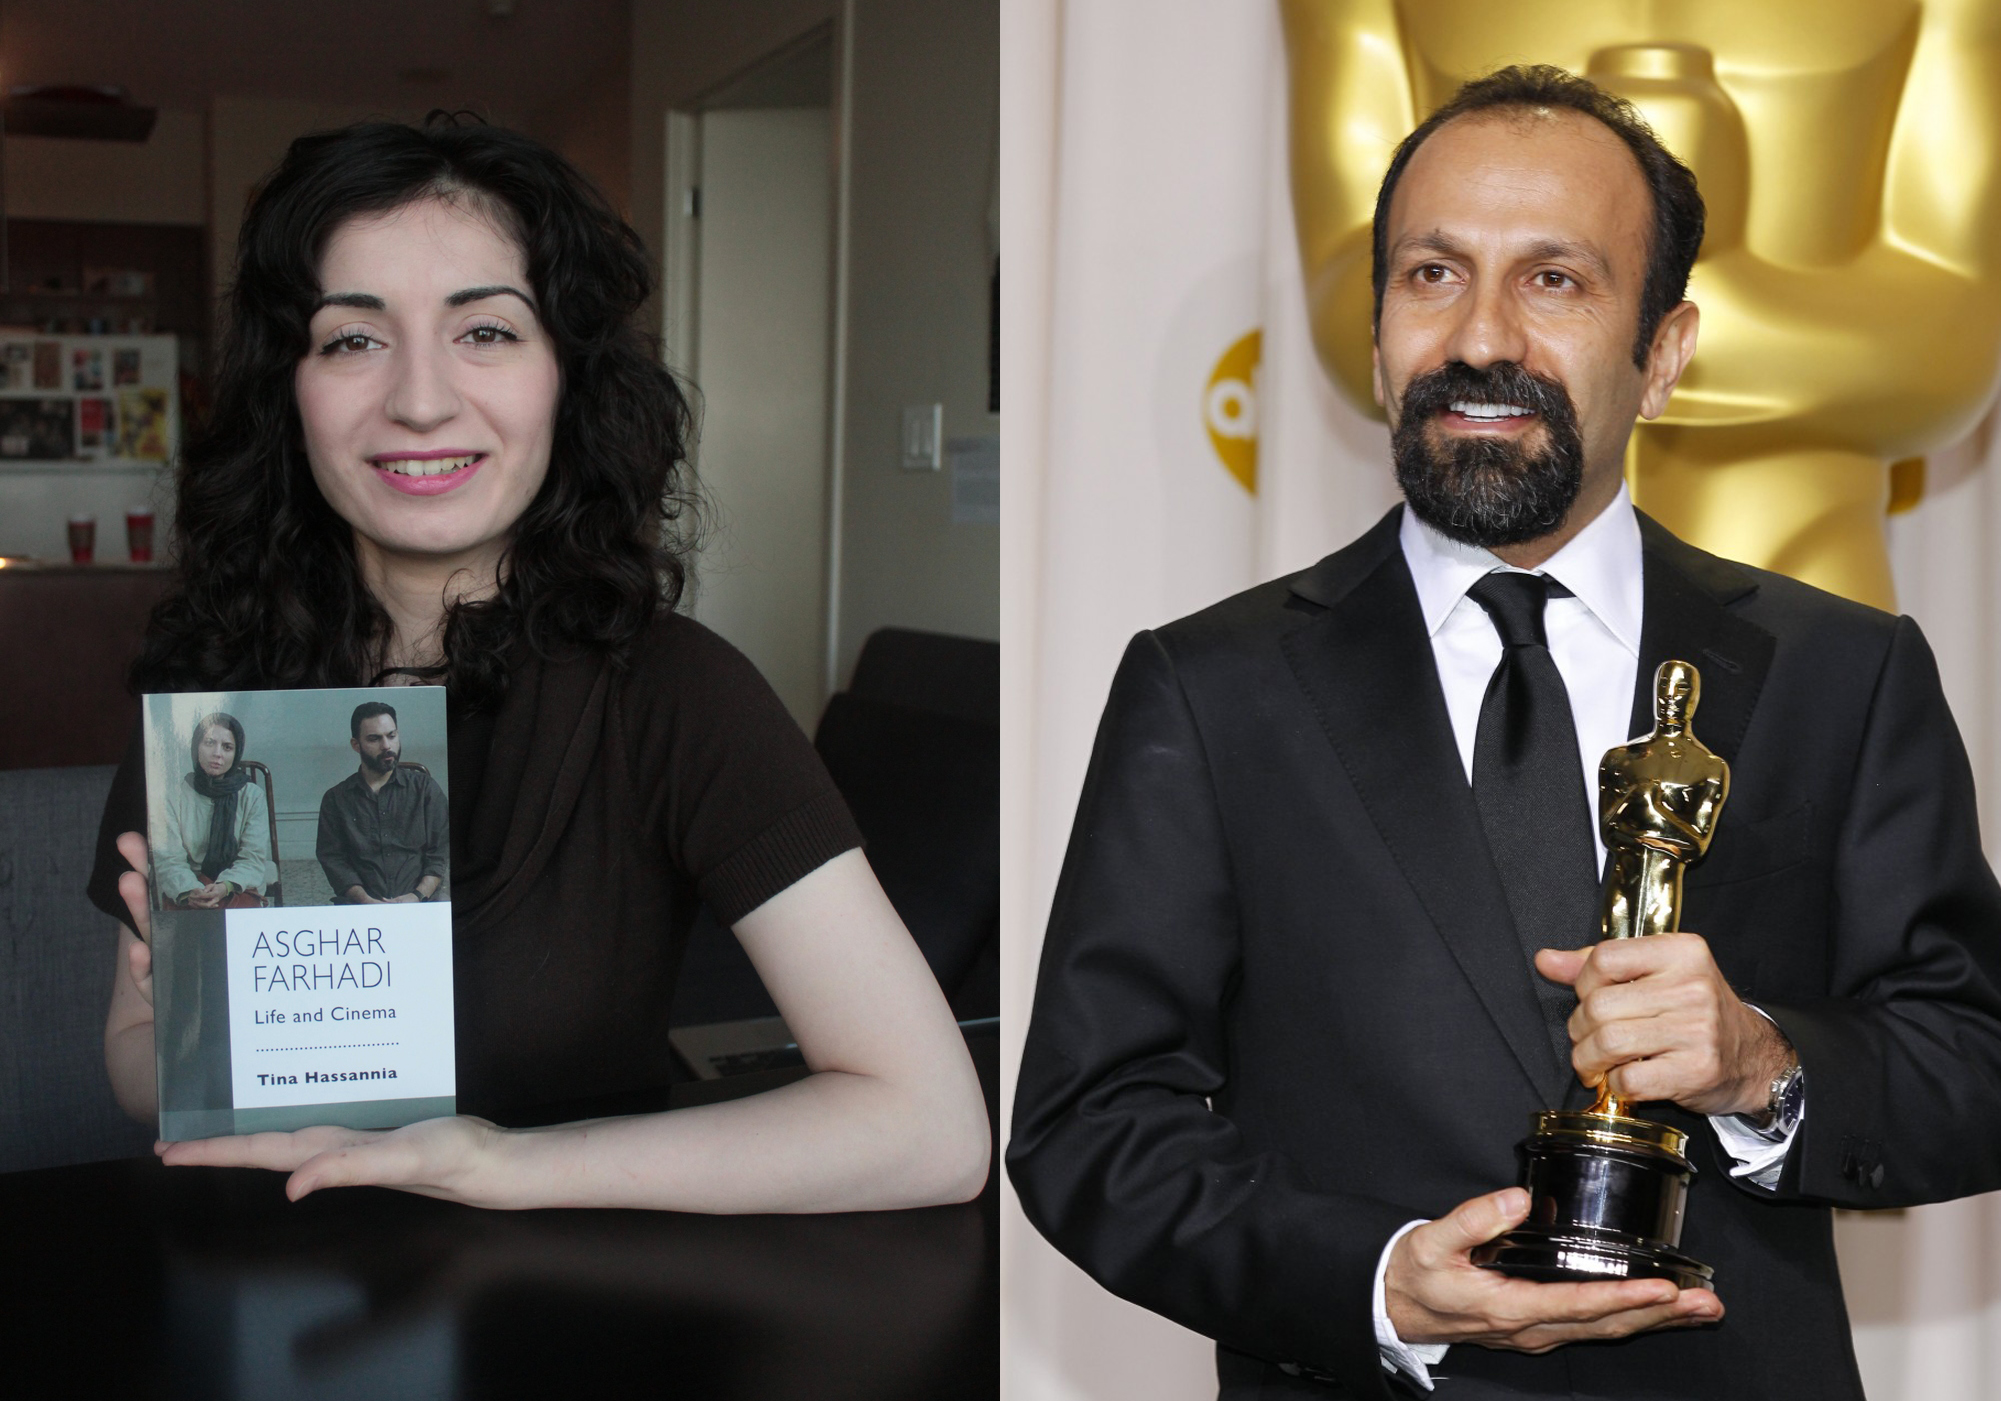 Hassannia On Farhadi